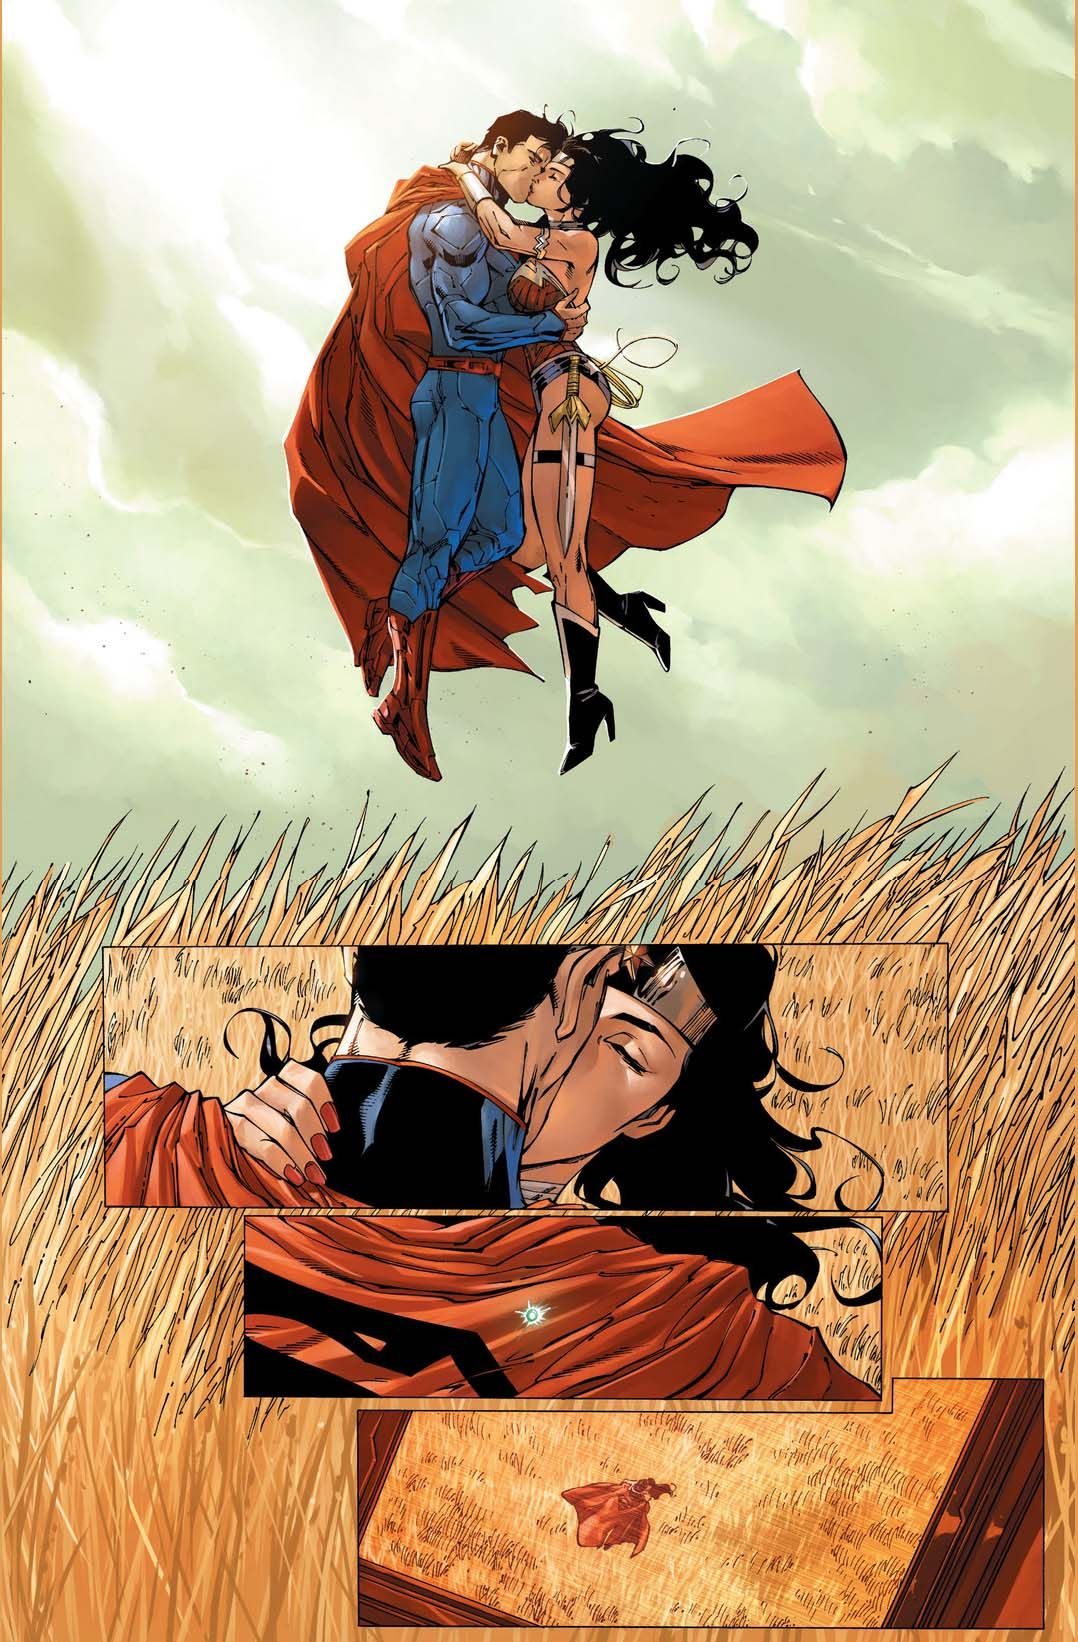 Superman and wonder woman 1078 1642 bruce - Superman wonder woman cartoon ...